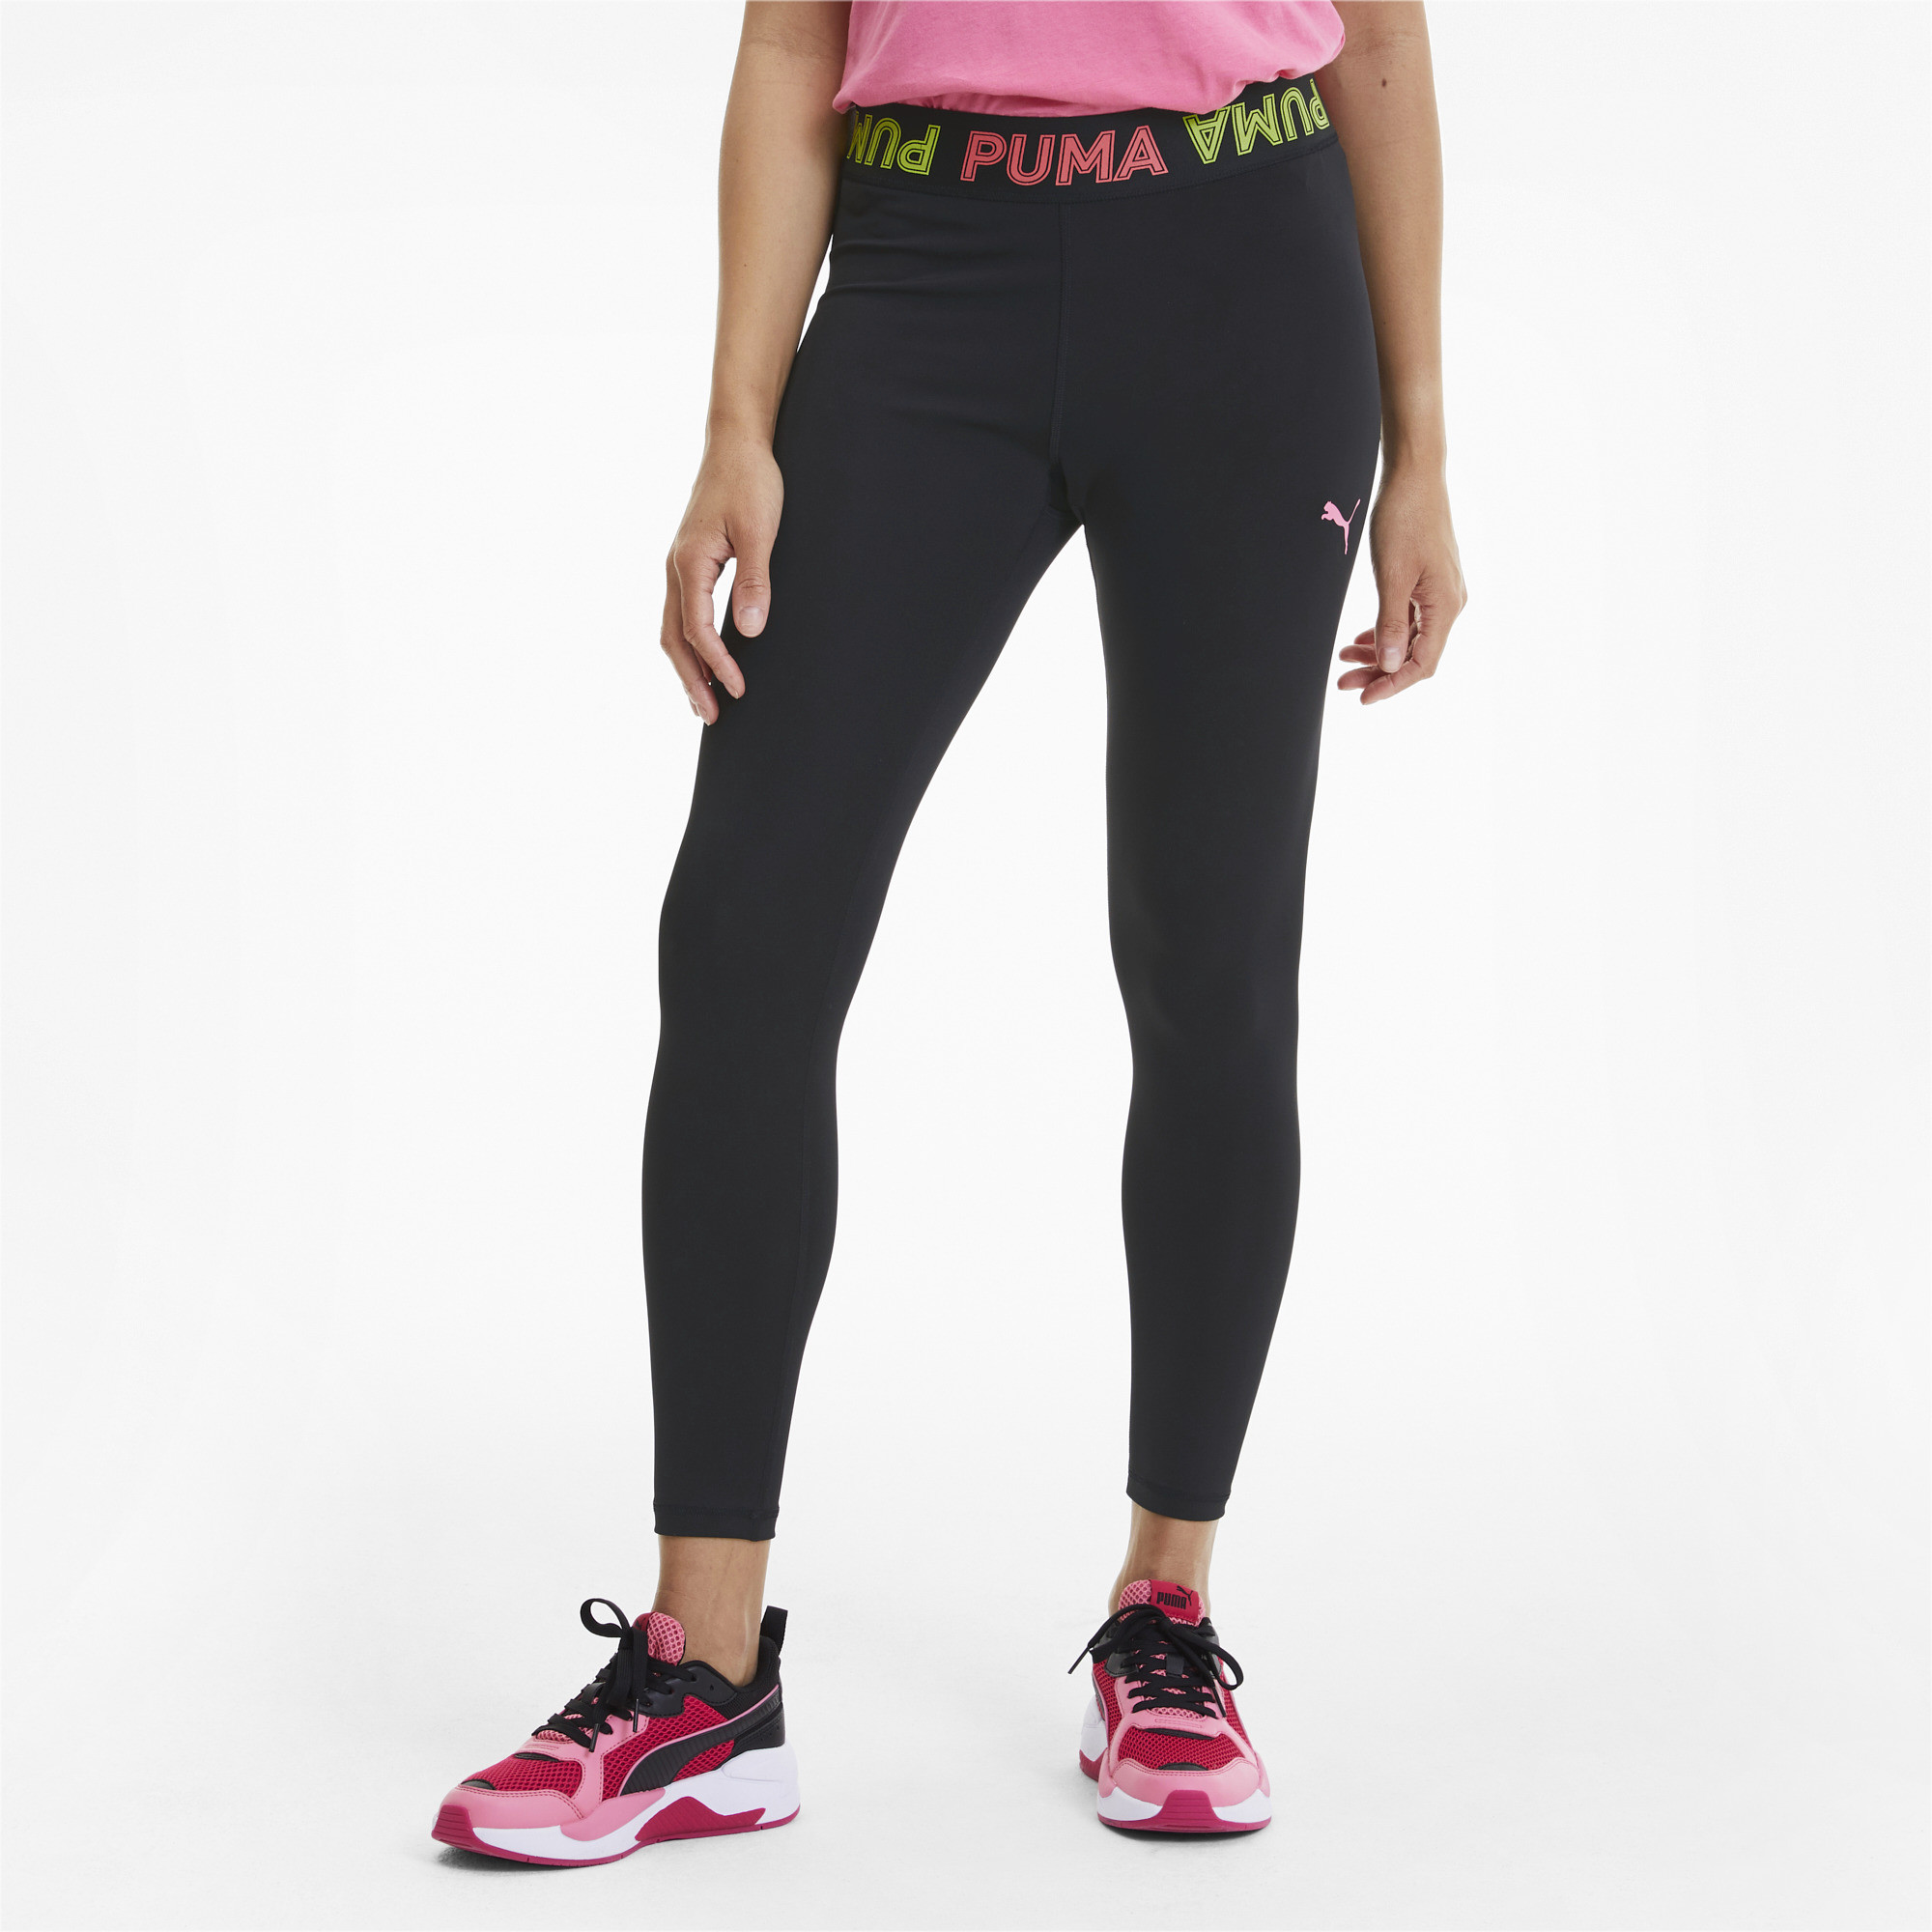 PUMA-Modern-Sports-Women-039-s-Band-Leggings-Women-Basics thumbnail 4